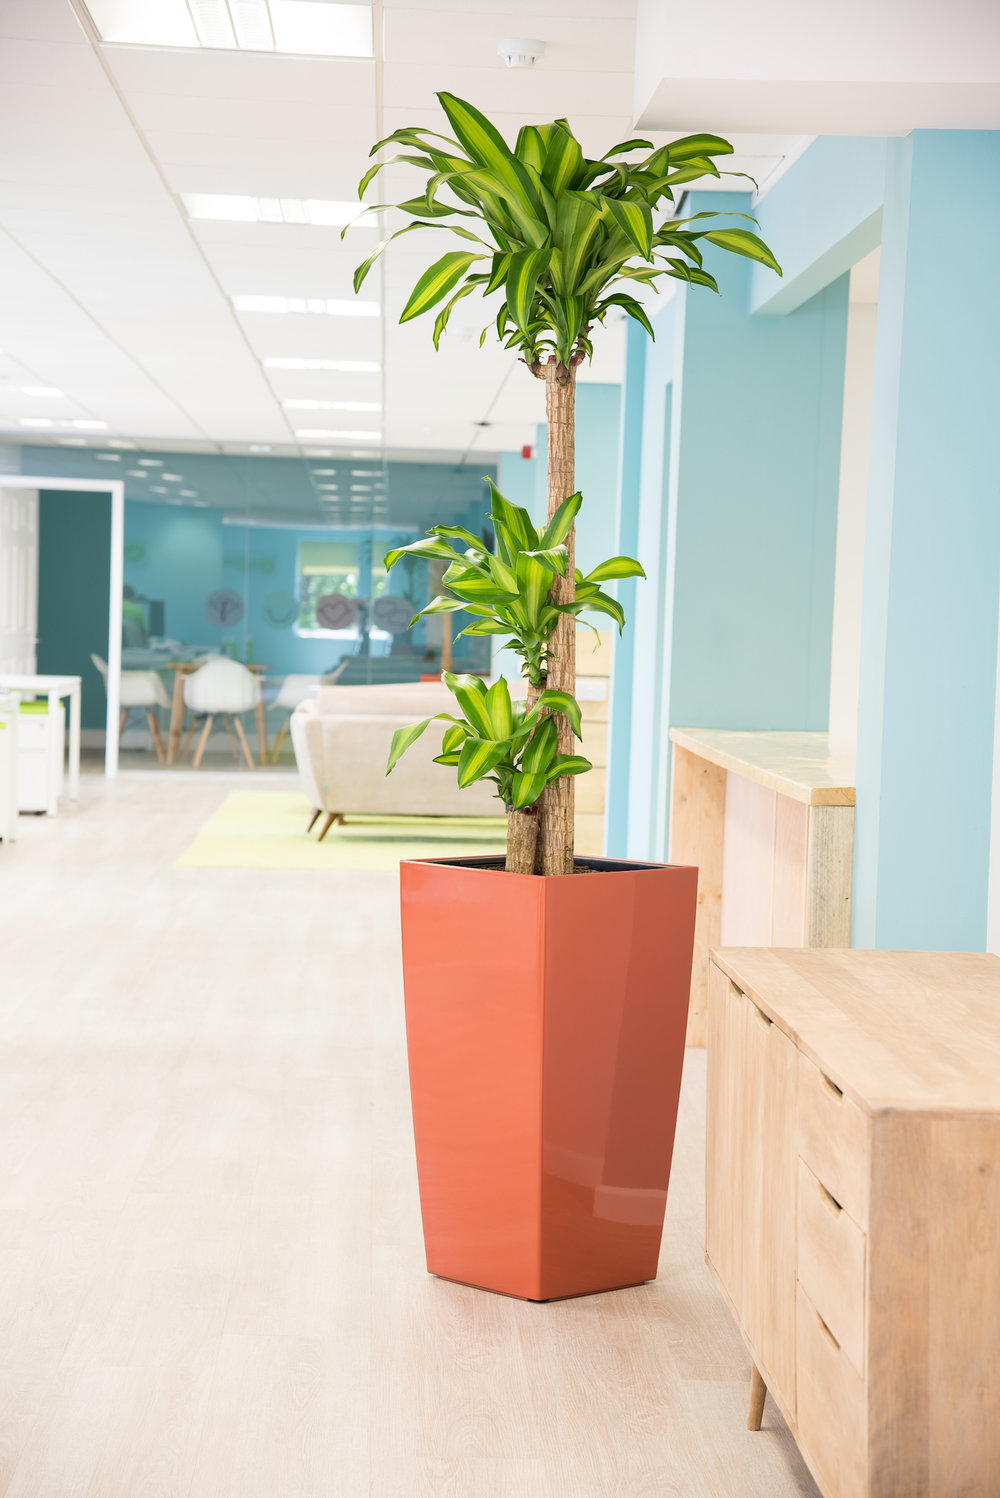 forrestbrown-plantcare-interior-plants-trees-bristol-image-1